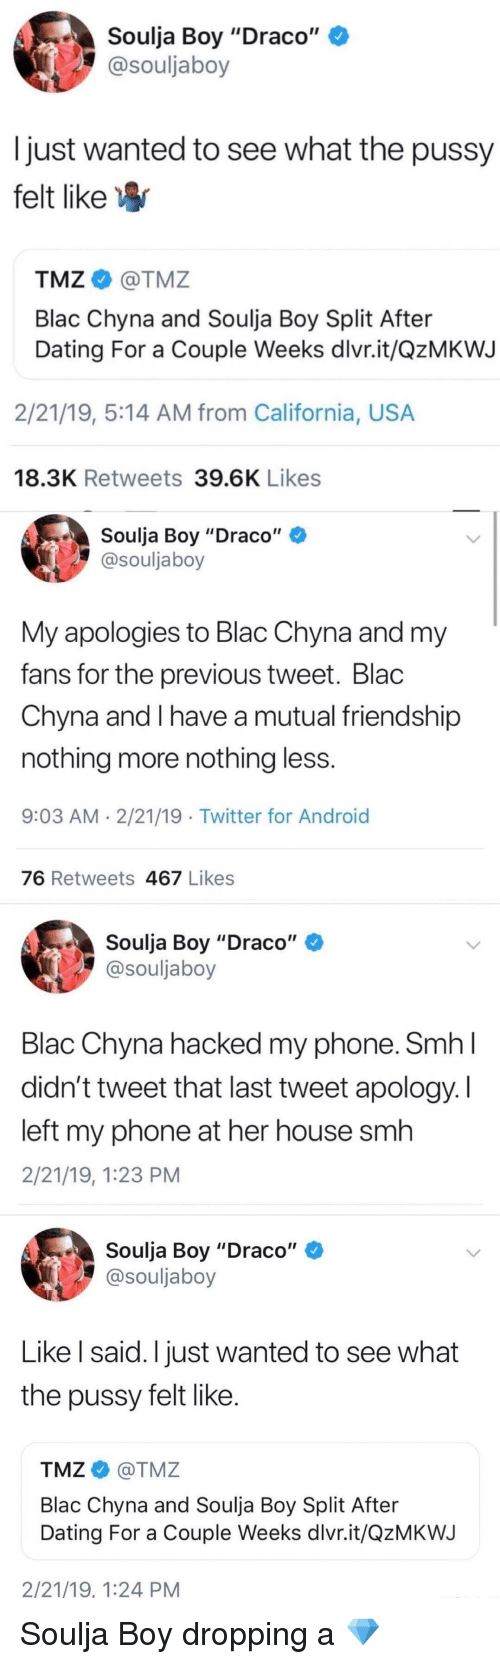 """Android, Blac Chyna, and Blackpeopletwitter: Soulja Boy """"Draco""""  @souljaboy  Ijust wanted to see what the pussy  felt like  TMZ@TMZ  Blac Chyna and Soulja Boy Split After  Dating For a Couple Weeks dlvr.it/QzMKWJ  2/21/19, 5:14 AM from California, USA  18.3K Retweets 39.6K Likes  Soulja Boy """"Draco""""  @souljaboy  My apologies to Blac Chyna and my  fans for the previous tweet. Blac  Chyna and I have a mutual friendship  nothing more nothing less  9:03 AM 2/21/19 . Twitter for Android  76 Retweets 467 Likes  Soulja Boy """"Draco""""  @souljaboy  Blac Chyna hacked my phone. SmhI  didn't tweet that last tweet apology. I  left my phone at her house smh  2/21/19, 1:23 PM  Soulja Boy """"Draco""""  @souljaboy  Like l said. I just wanted to see what  the pussy felt like  TMZ@TMZ  Blac Chyna and Soulja Boy Split After  Dating For a Couple Weeks dlvr.it/QzMKWJ  2/21/19, 1:24 PM"""